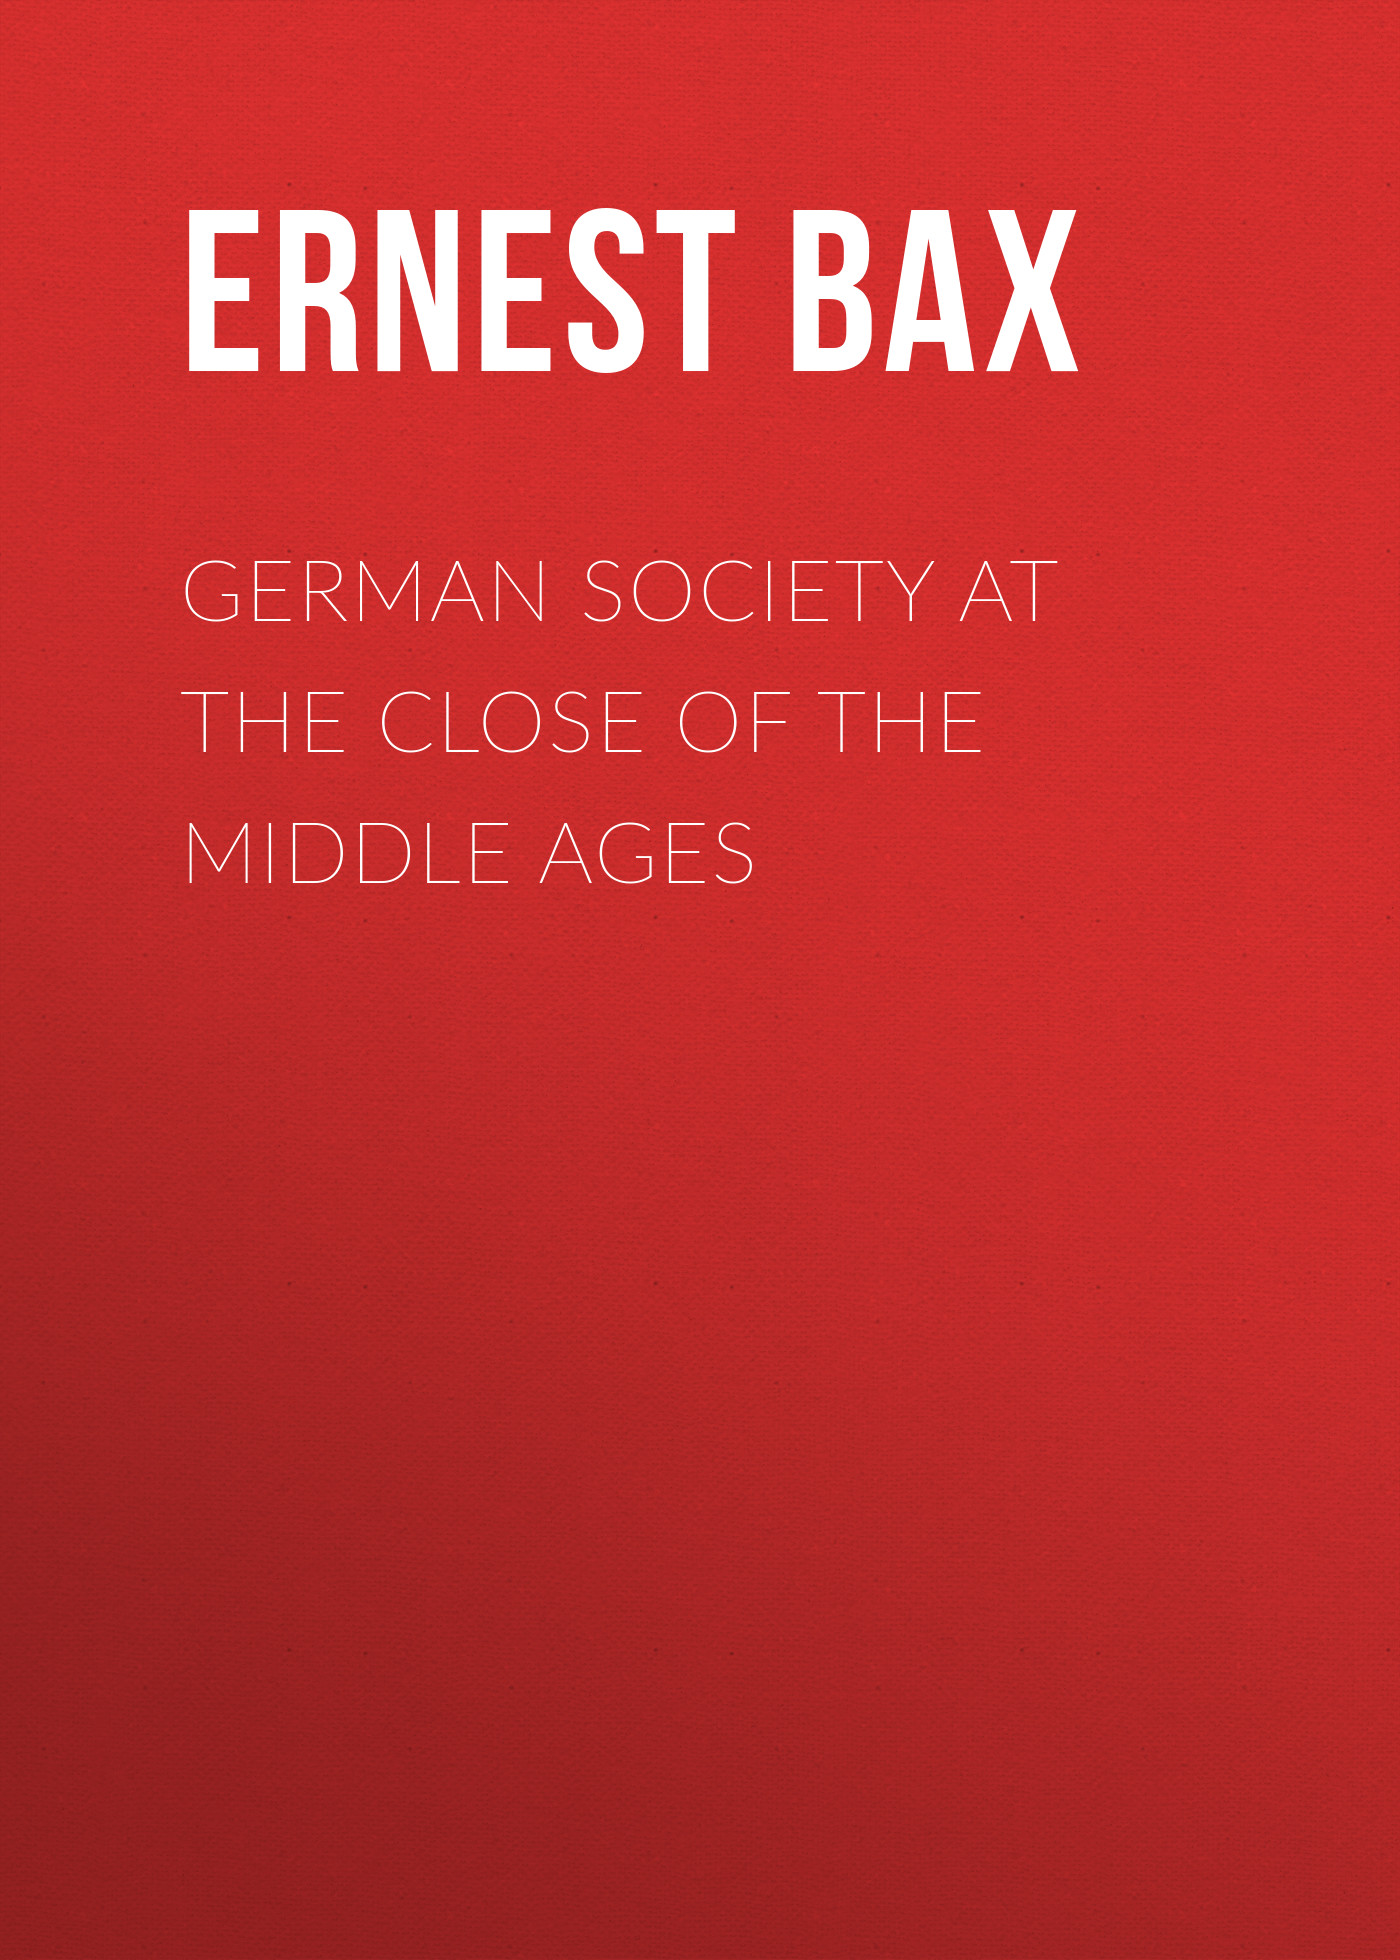 Фото - Bax Ernest Belfort German Society at the Close of the Middle Ages the penguin german phrasebook